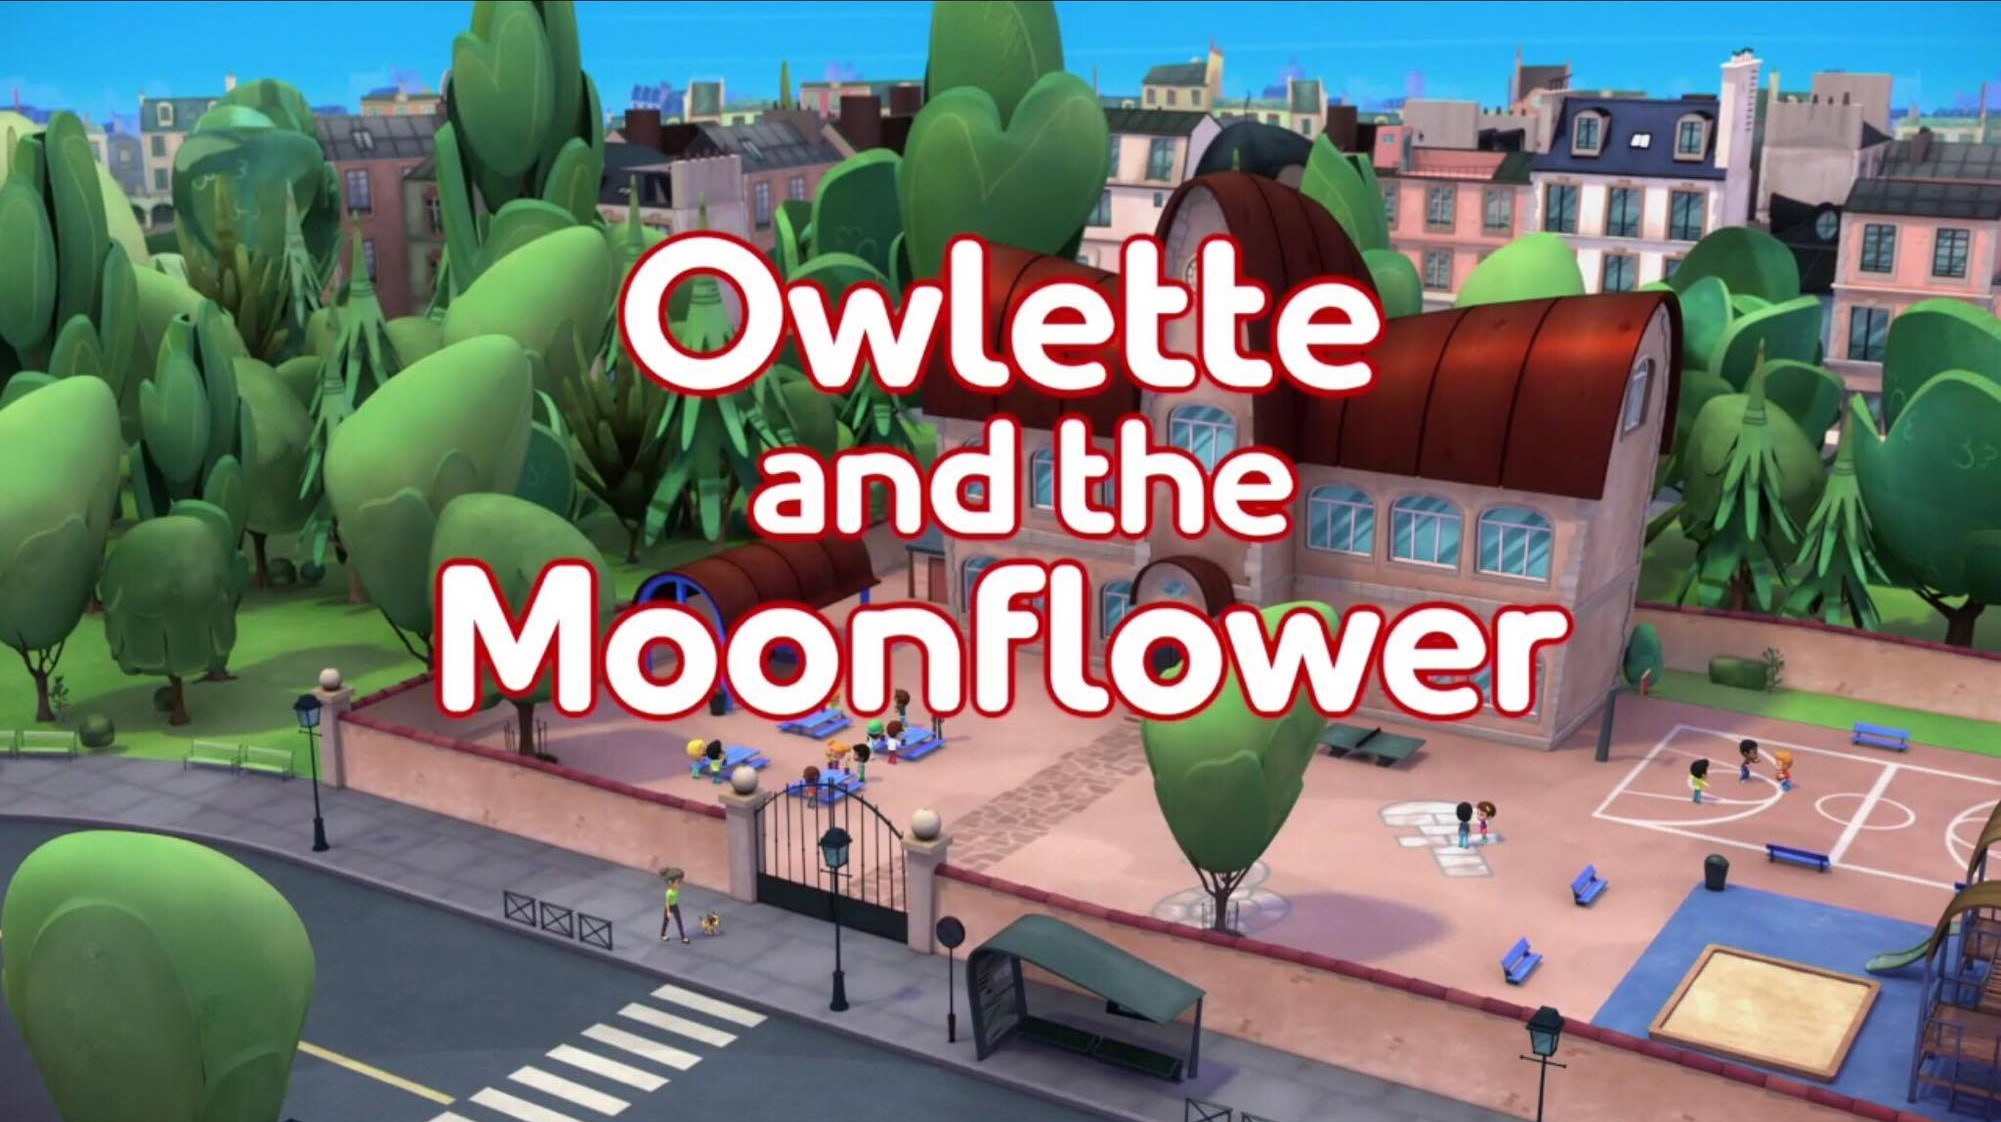 Owlette and the Moonflower